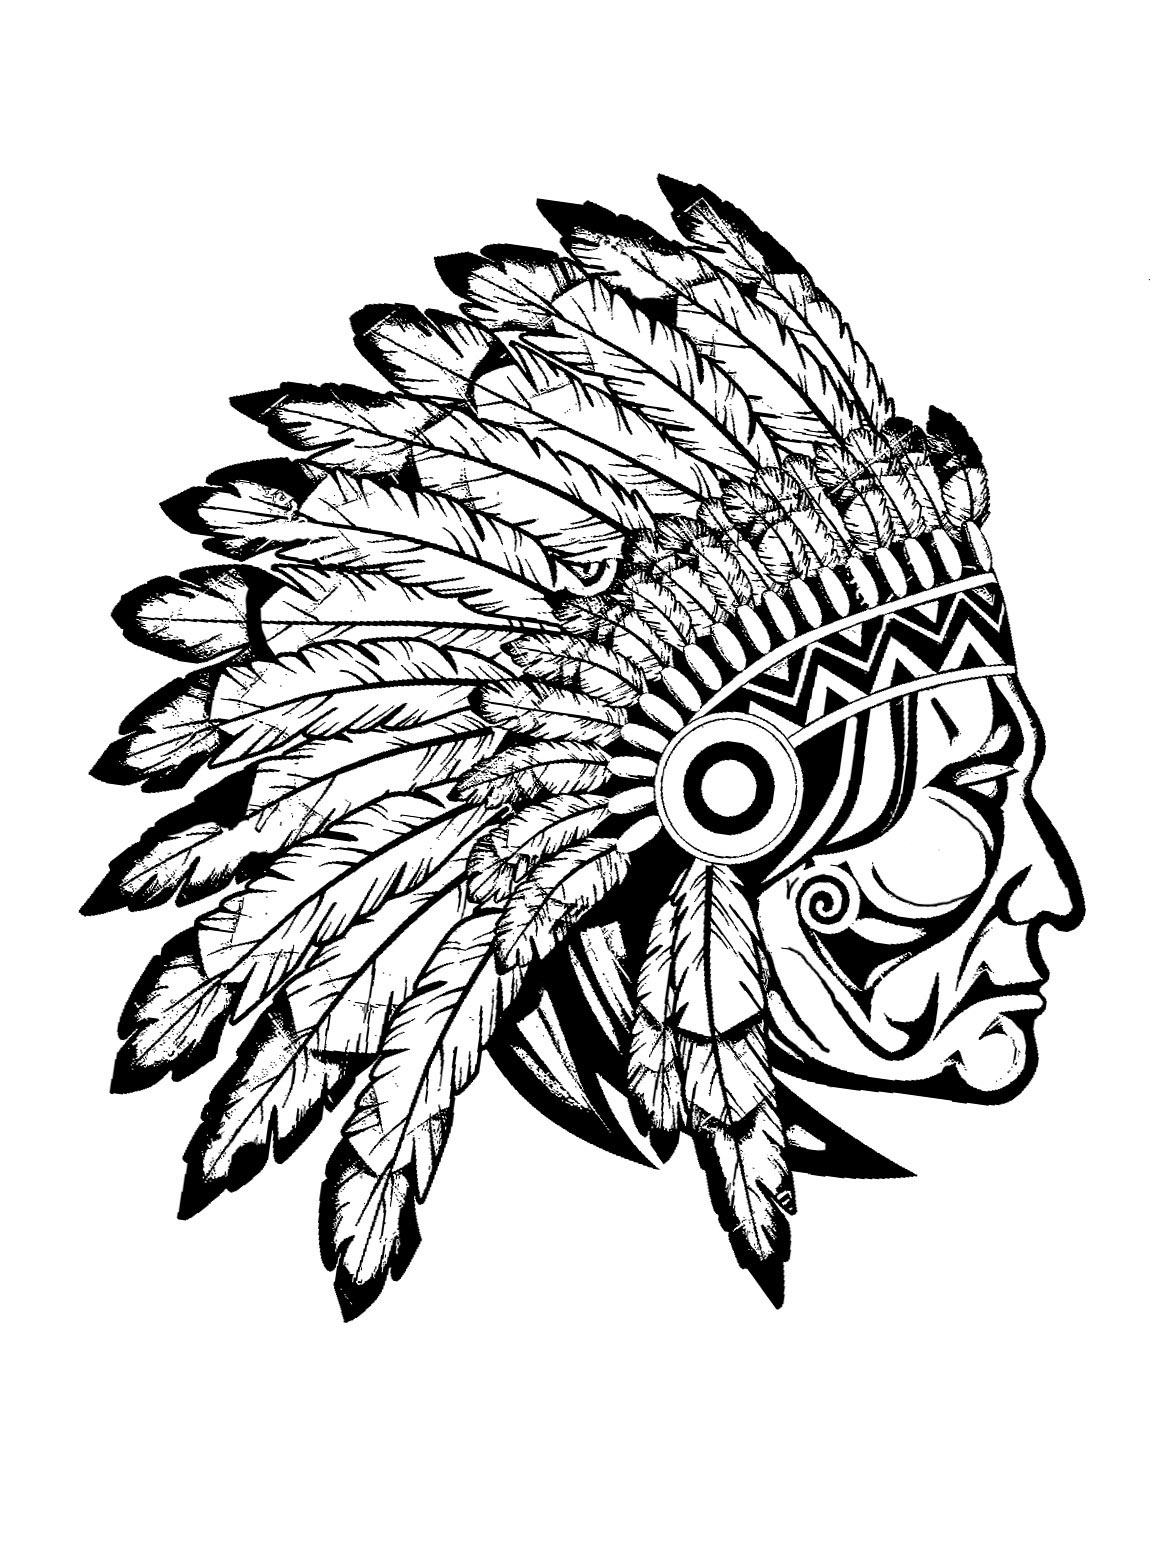 Native American Coloring Pages Impressive Indian Native Chief Profile  Native American  Coloring Pages For Decorating Design